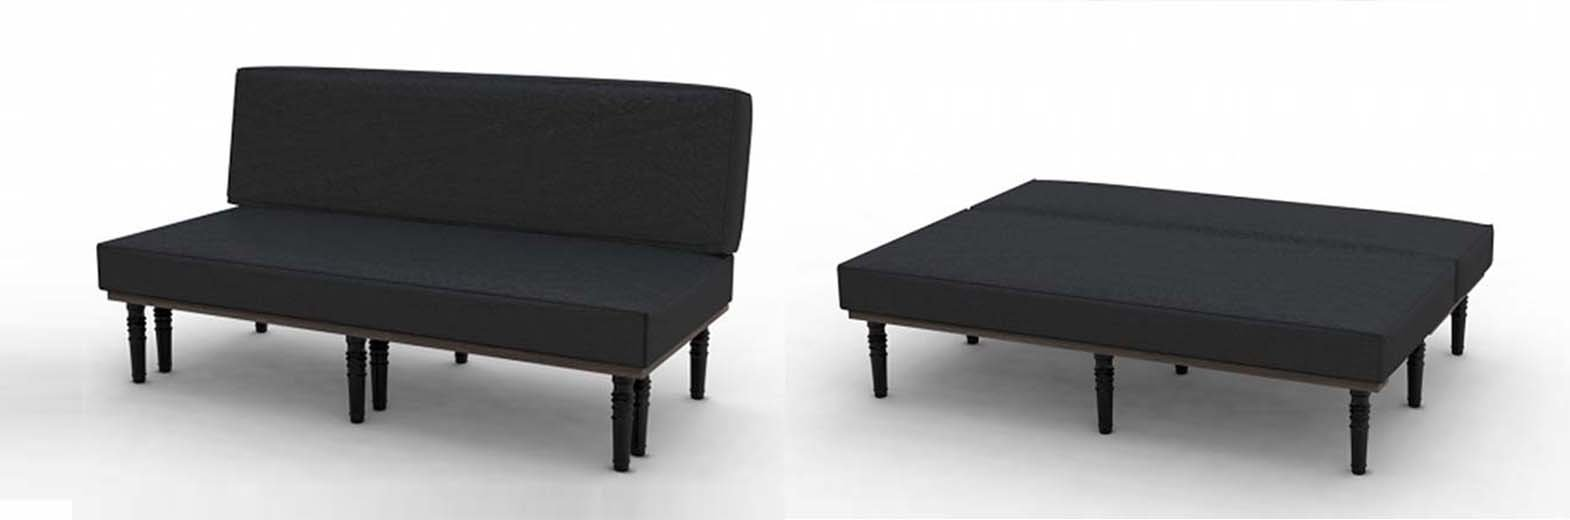 Sofa bed and chair with foot stool bed bench table for Divan bed feet